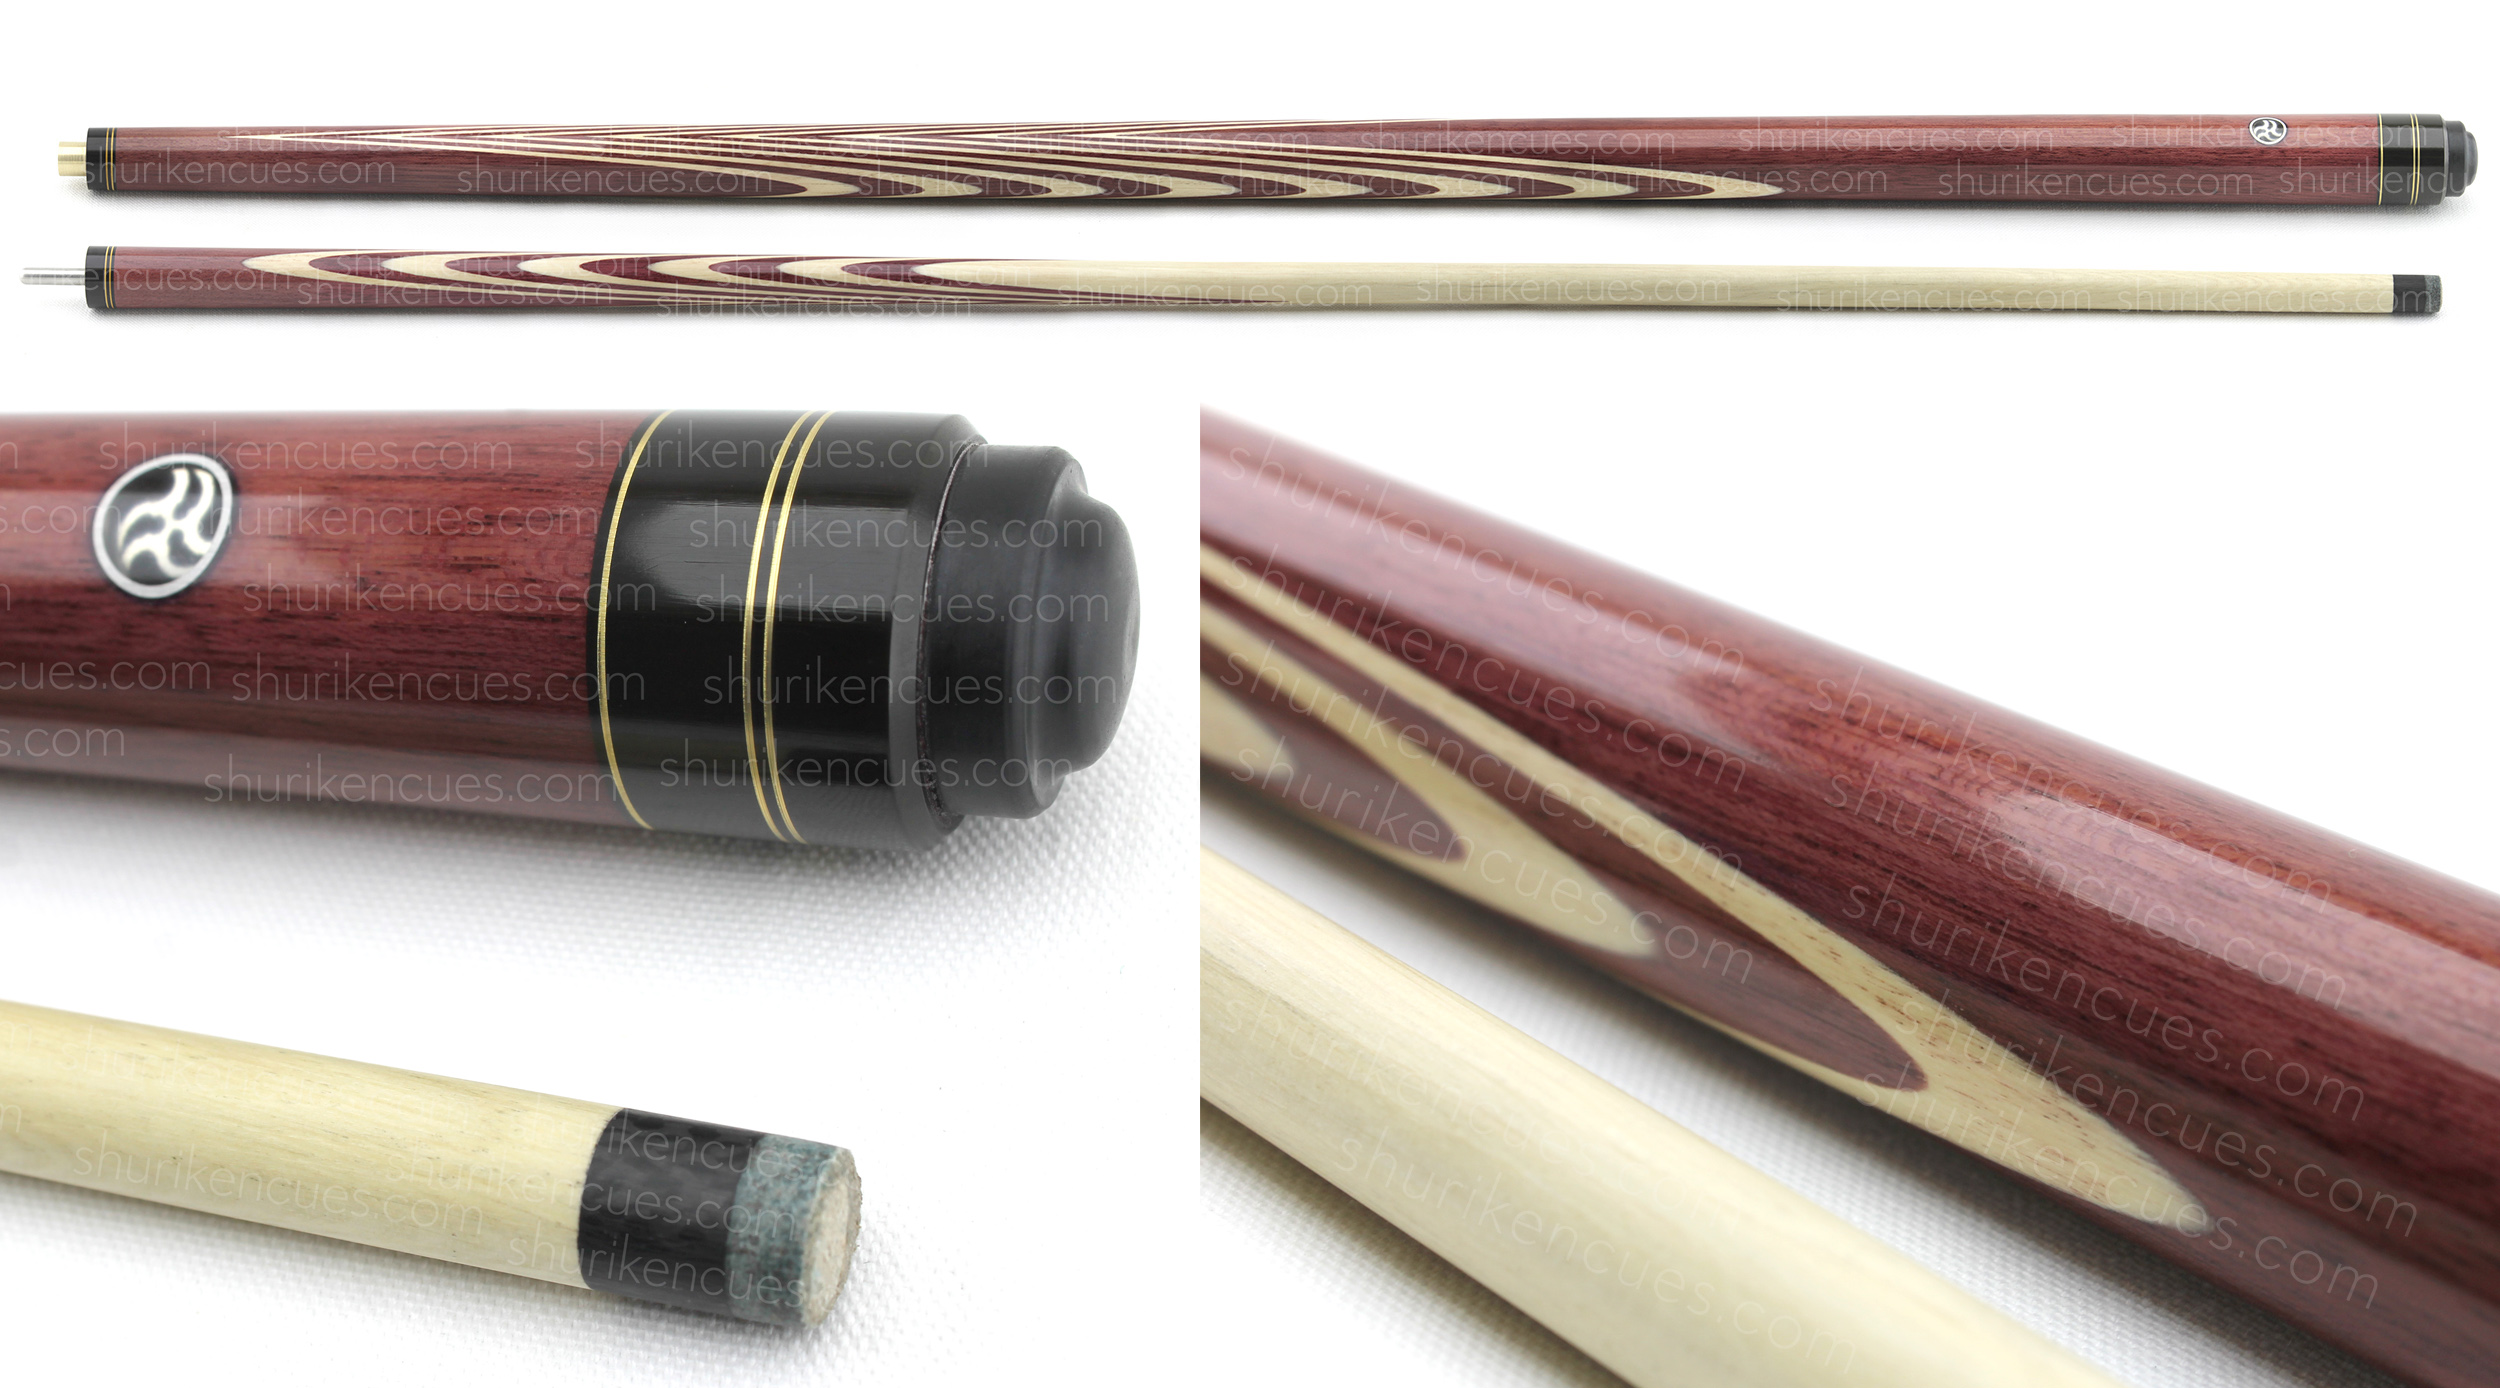 title-1-classic-amaranth-big amaranth fullsplice cue amaranth pool cue amaranth exlusive cue amaranth custom cue amaranth premium cue amaranth wood species